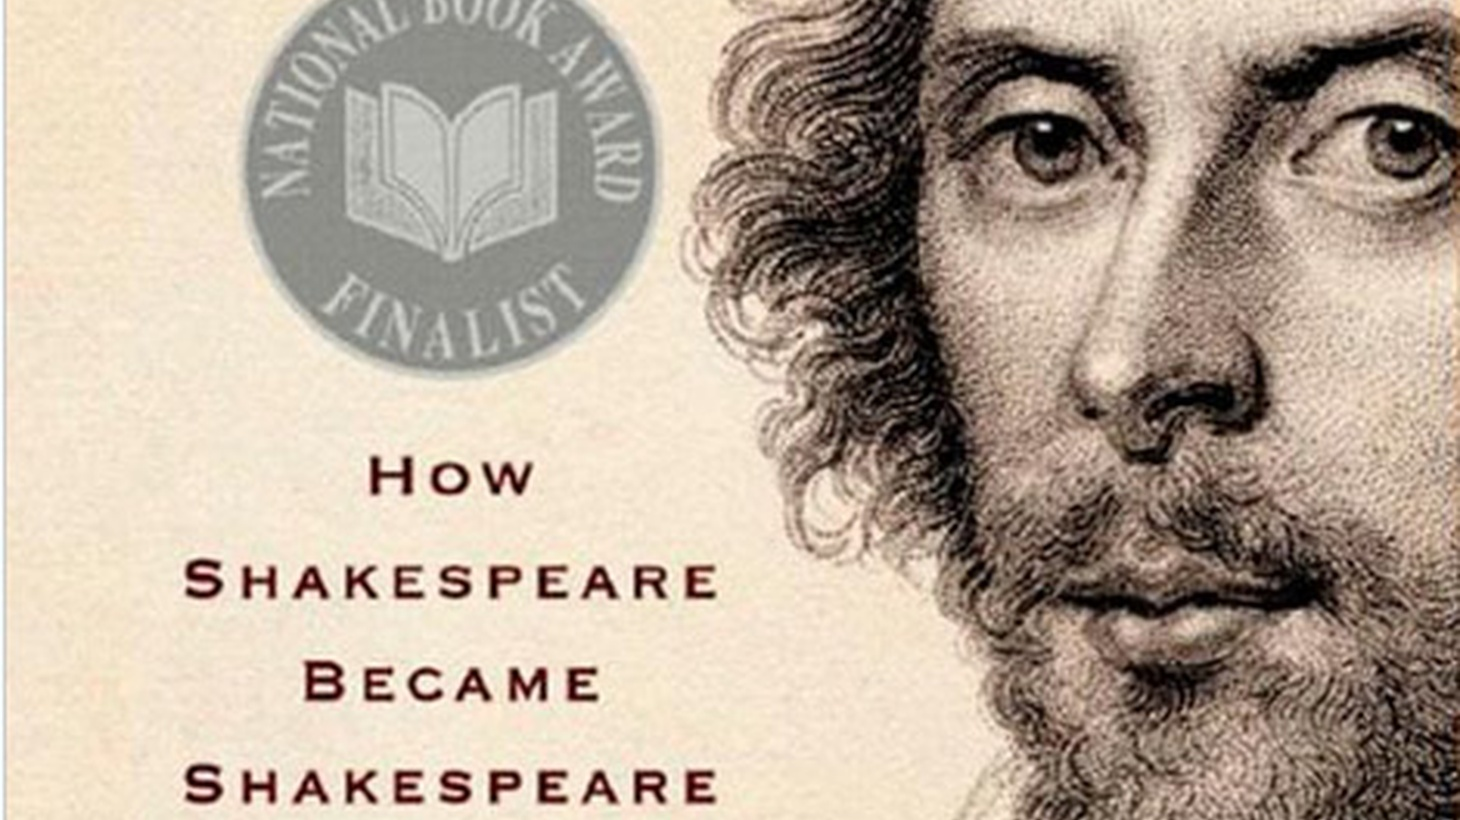 A wizard of a storyteller, Greenblatt combines prodigious historical research and encyclopedic knowledge to conjure a vision of life and love in Elizabethan England.